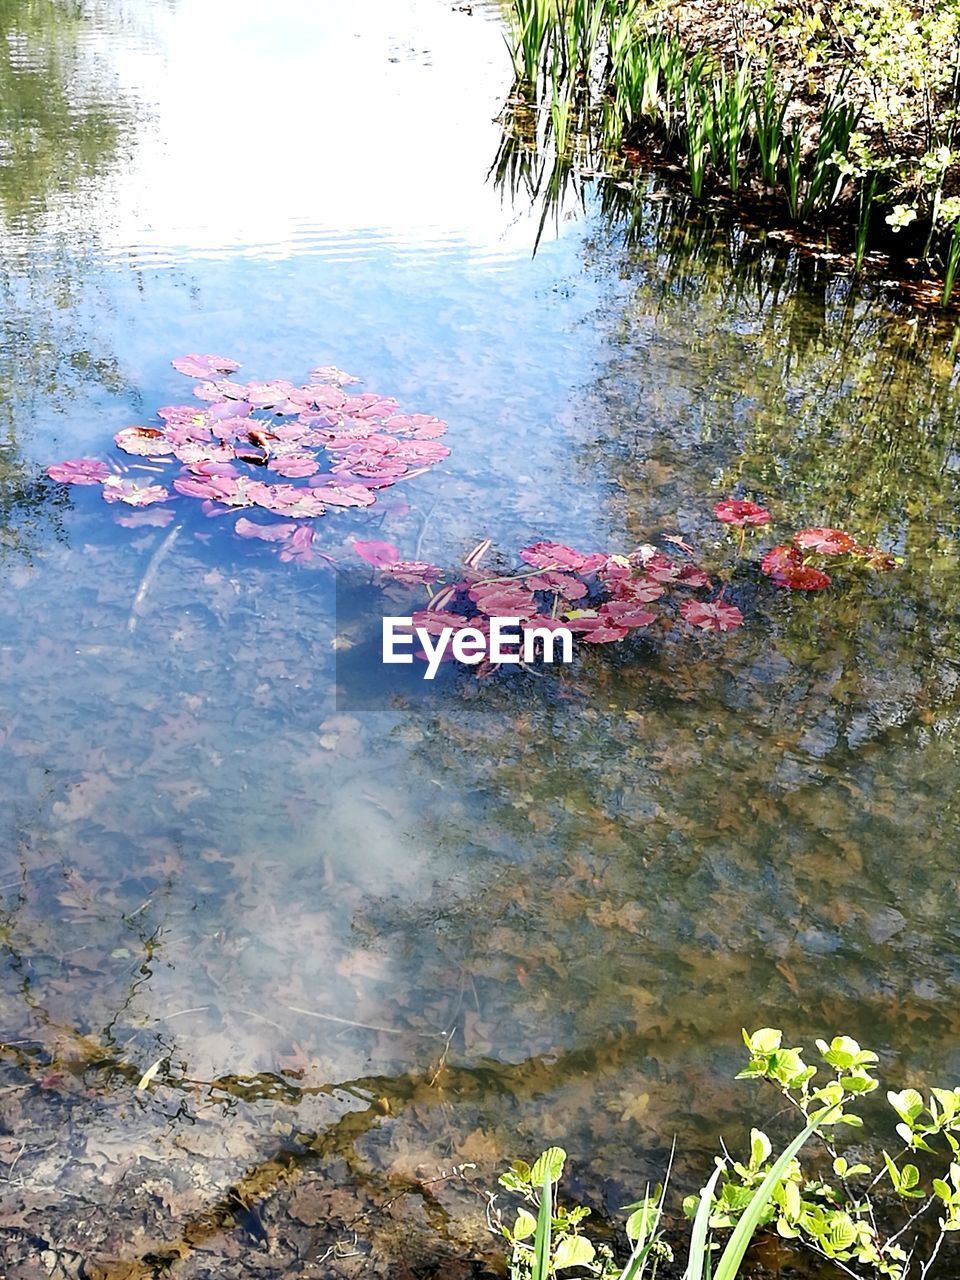 water, nature, lake, flower, beauty in nature, growth, plant, floating on water, day, reflection, lily pad, no people, outdoors, leaf, tranquility, high angle view, water lily, scenics, fragility, tree